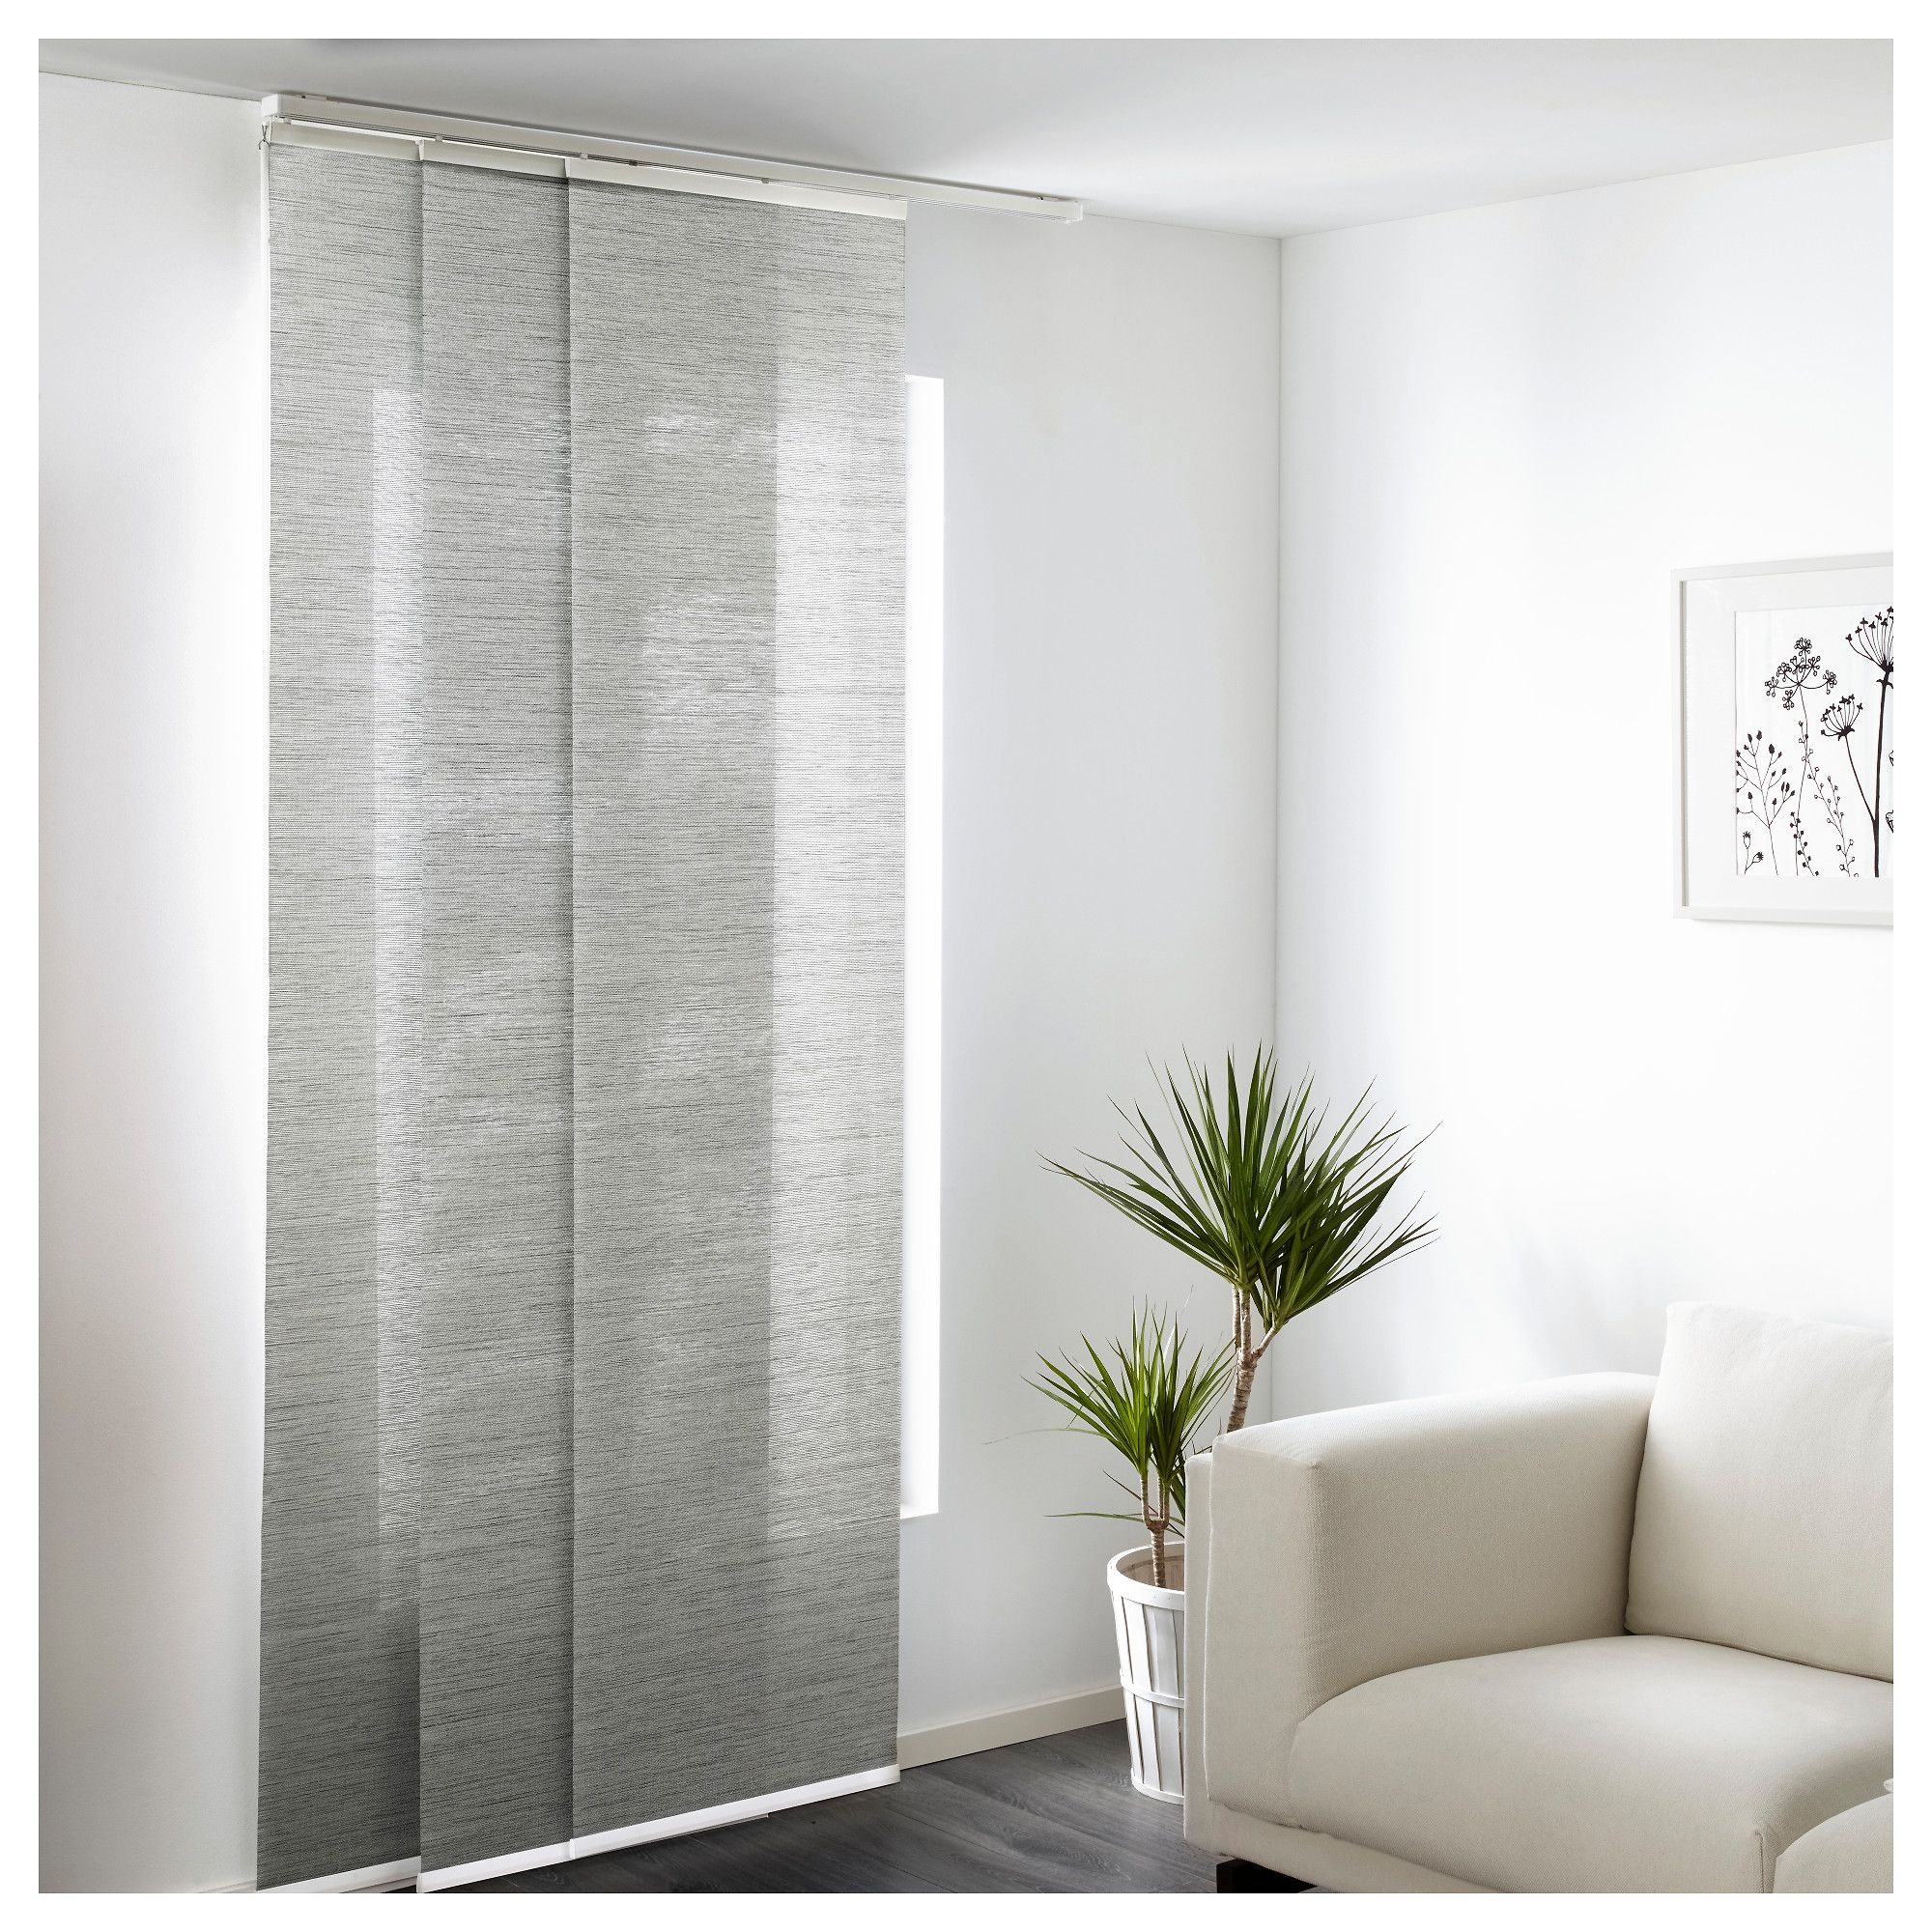 thermal door curtain elegant patio panels blackout interior curtains sliding designs tone brown panel lovely for doors